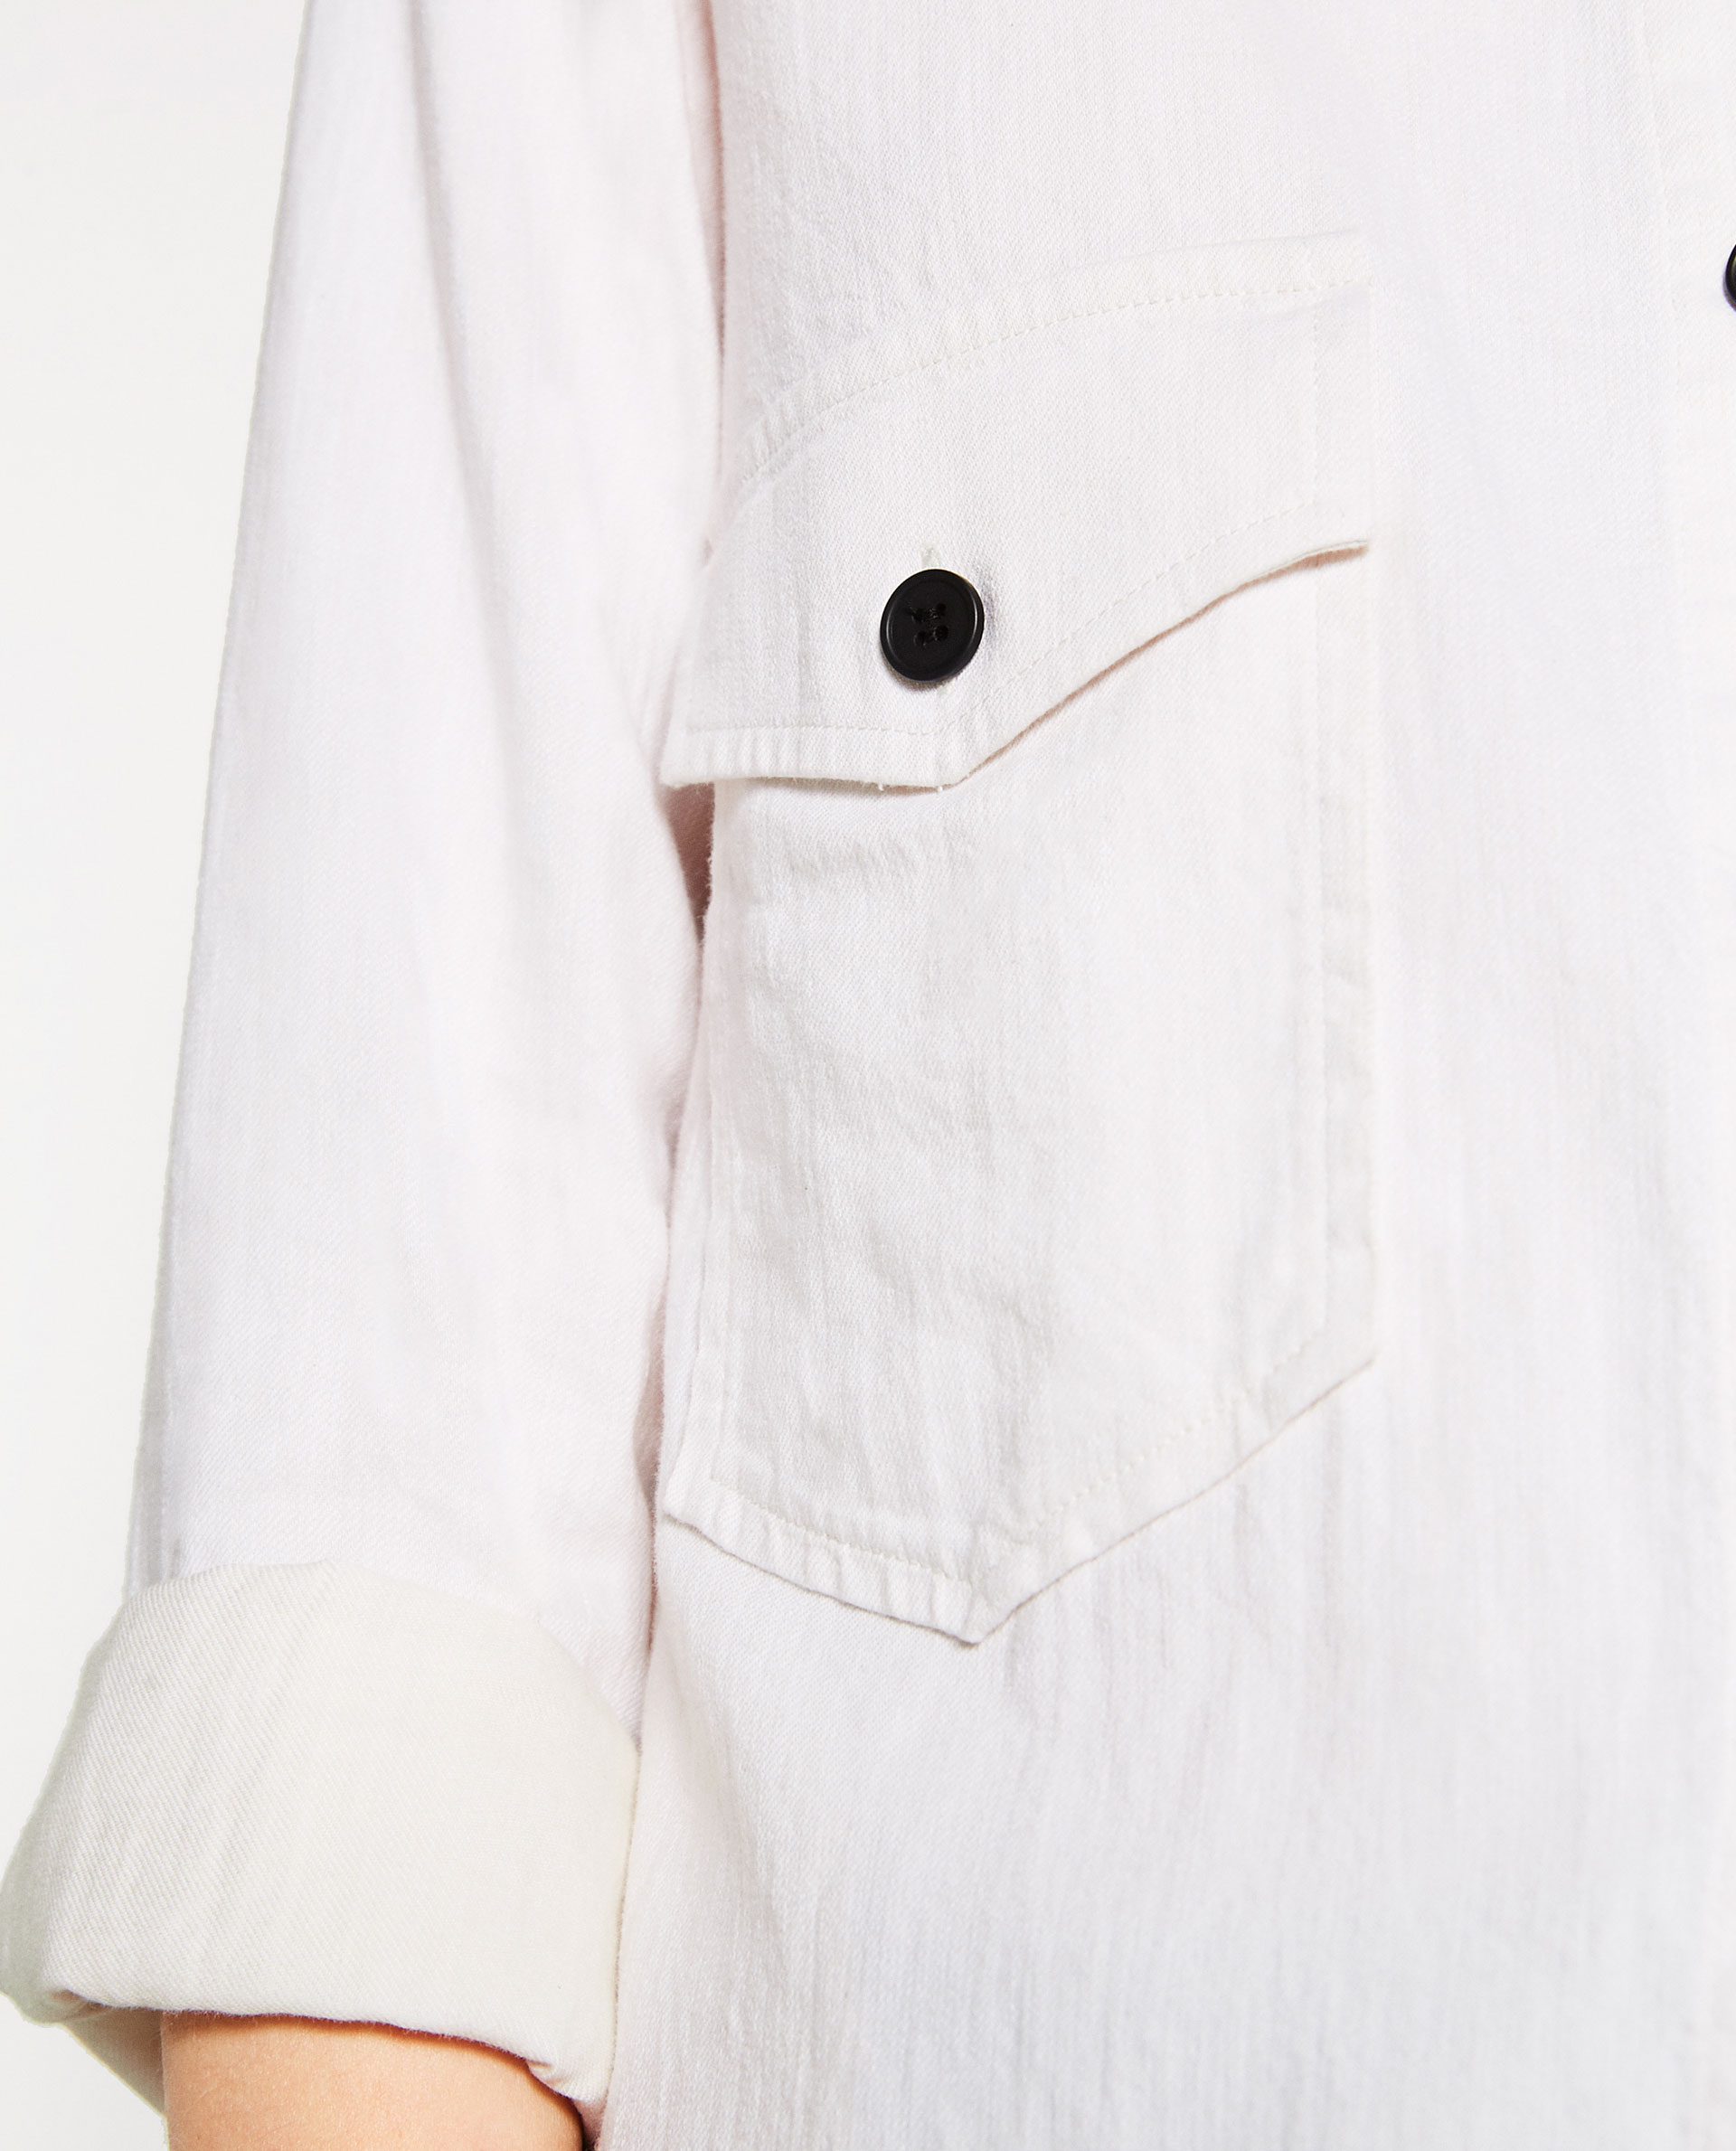 zara, white shirt, detail, cuffed sleeve